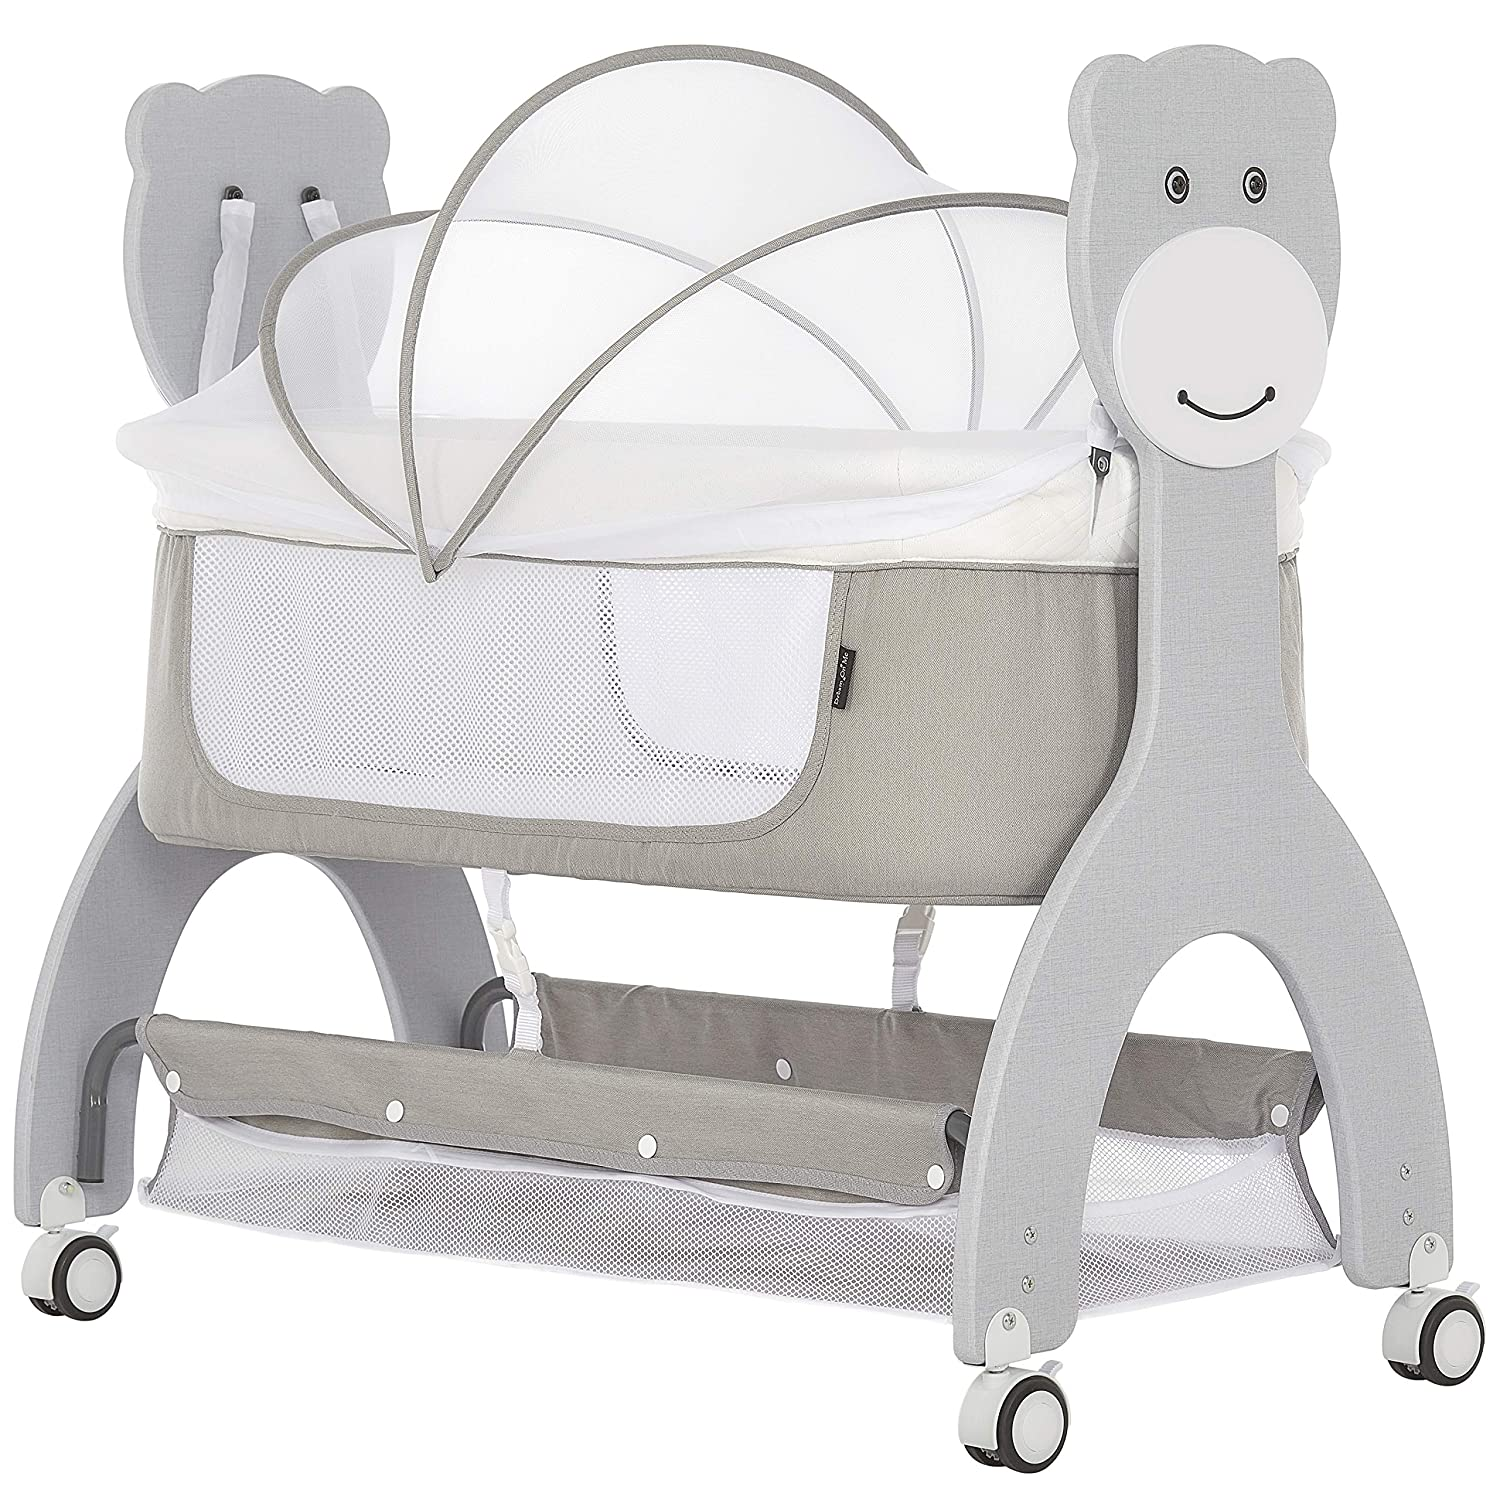 Dream On Me Cub Portable Bassinet   Rocking Cradle   Best for Small Living Space   Compact Portable Bassinet, Grey